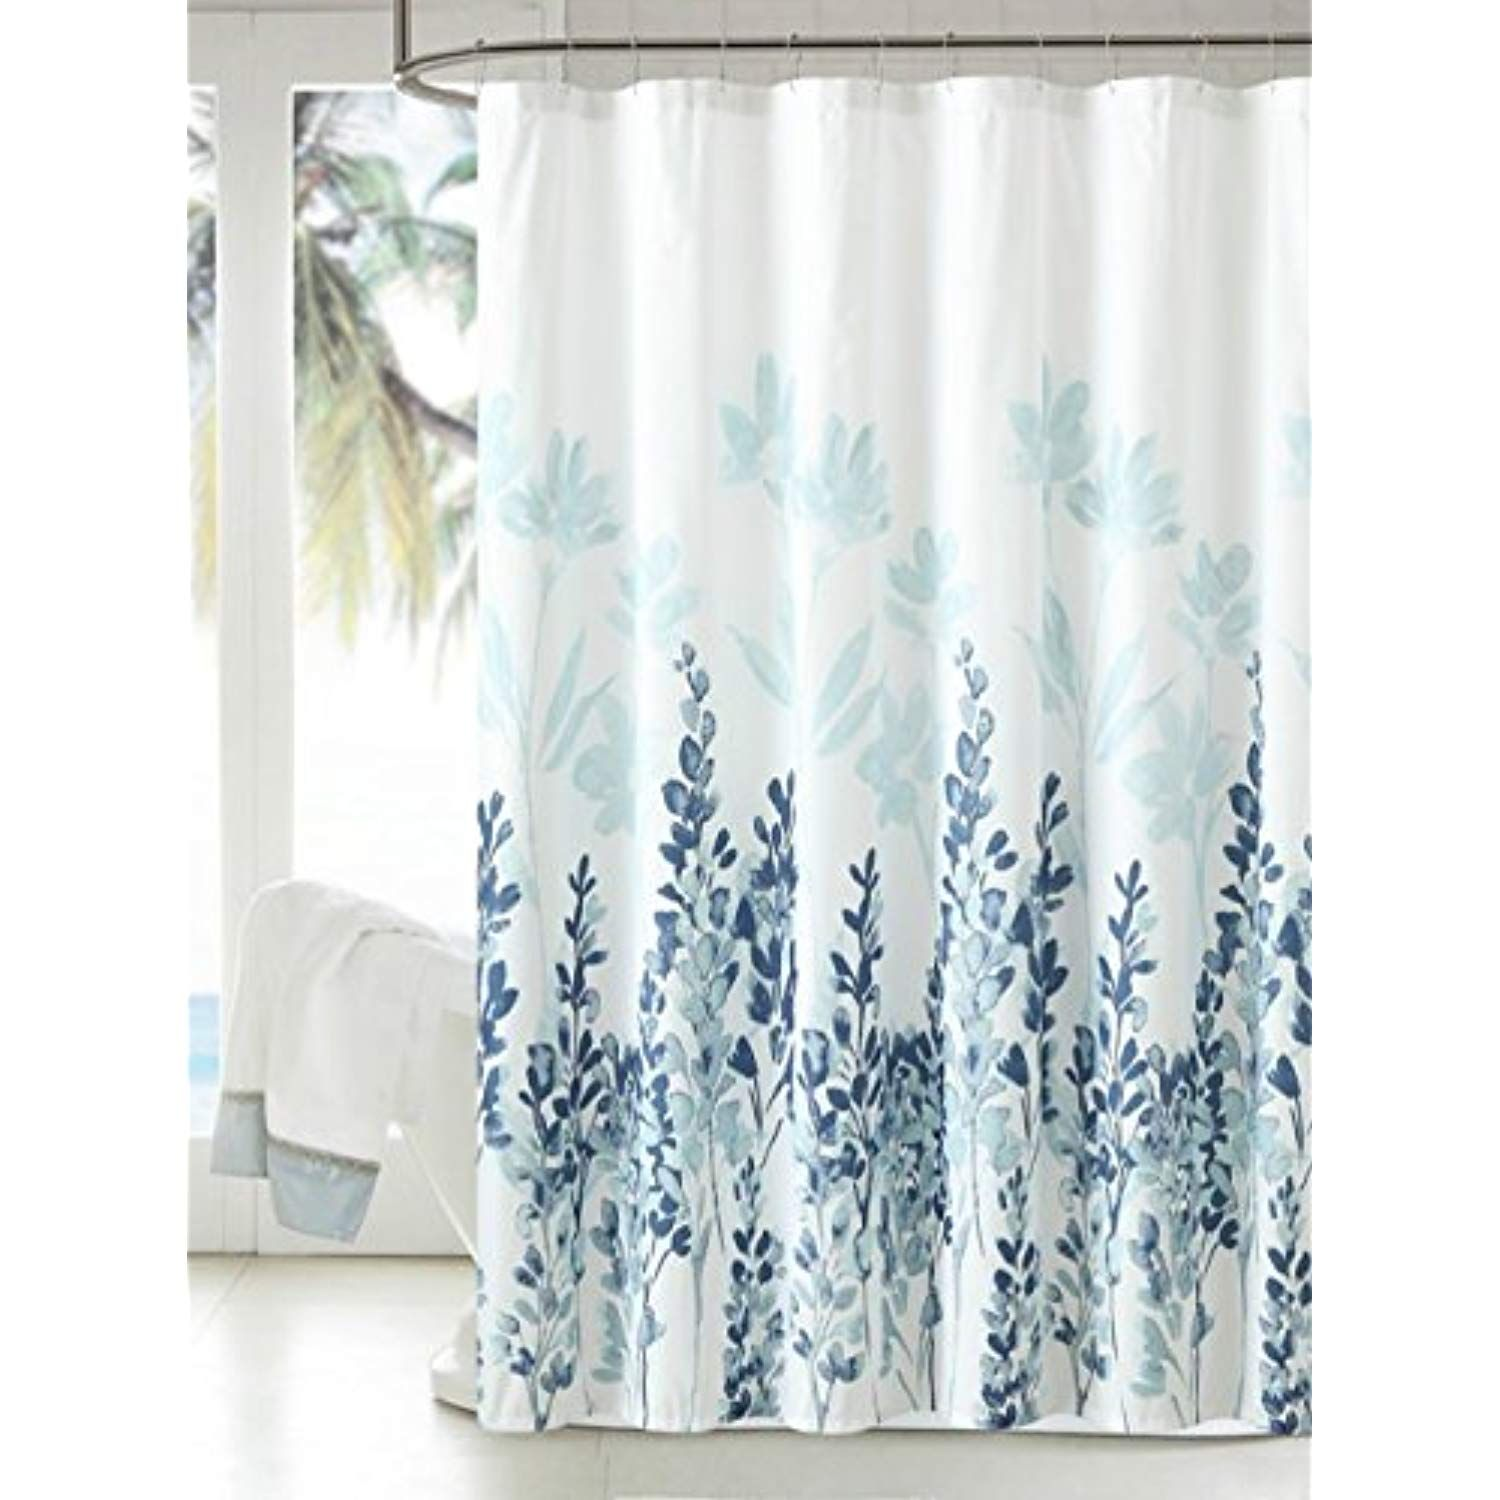 Manggou fabric shower curtainjapanese style flowers shower curtain